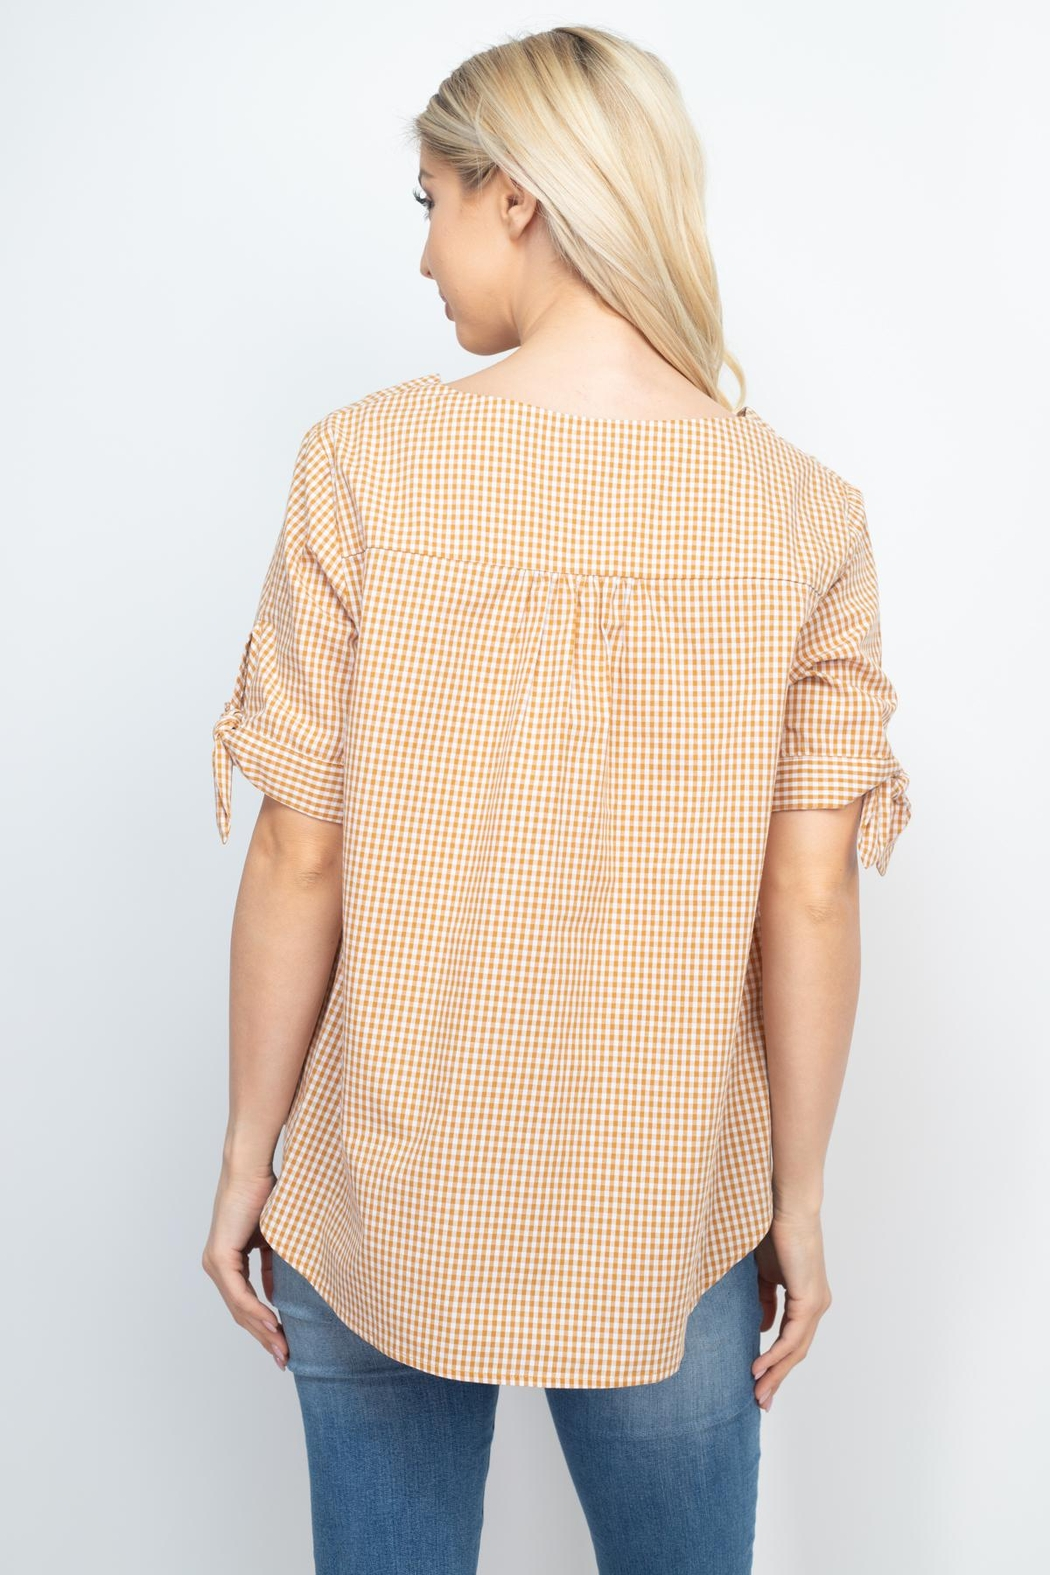 Riah Fashion Mary-Gold-Top - Front Full Image